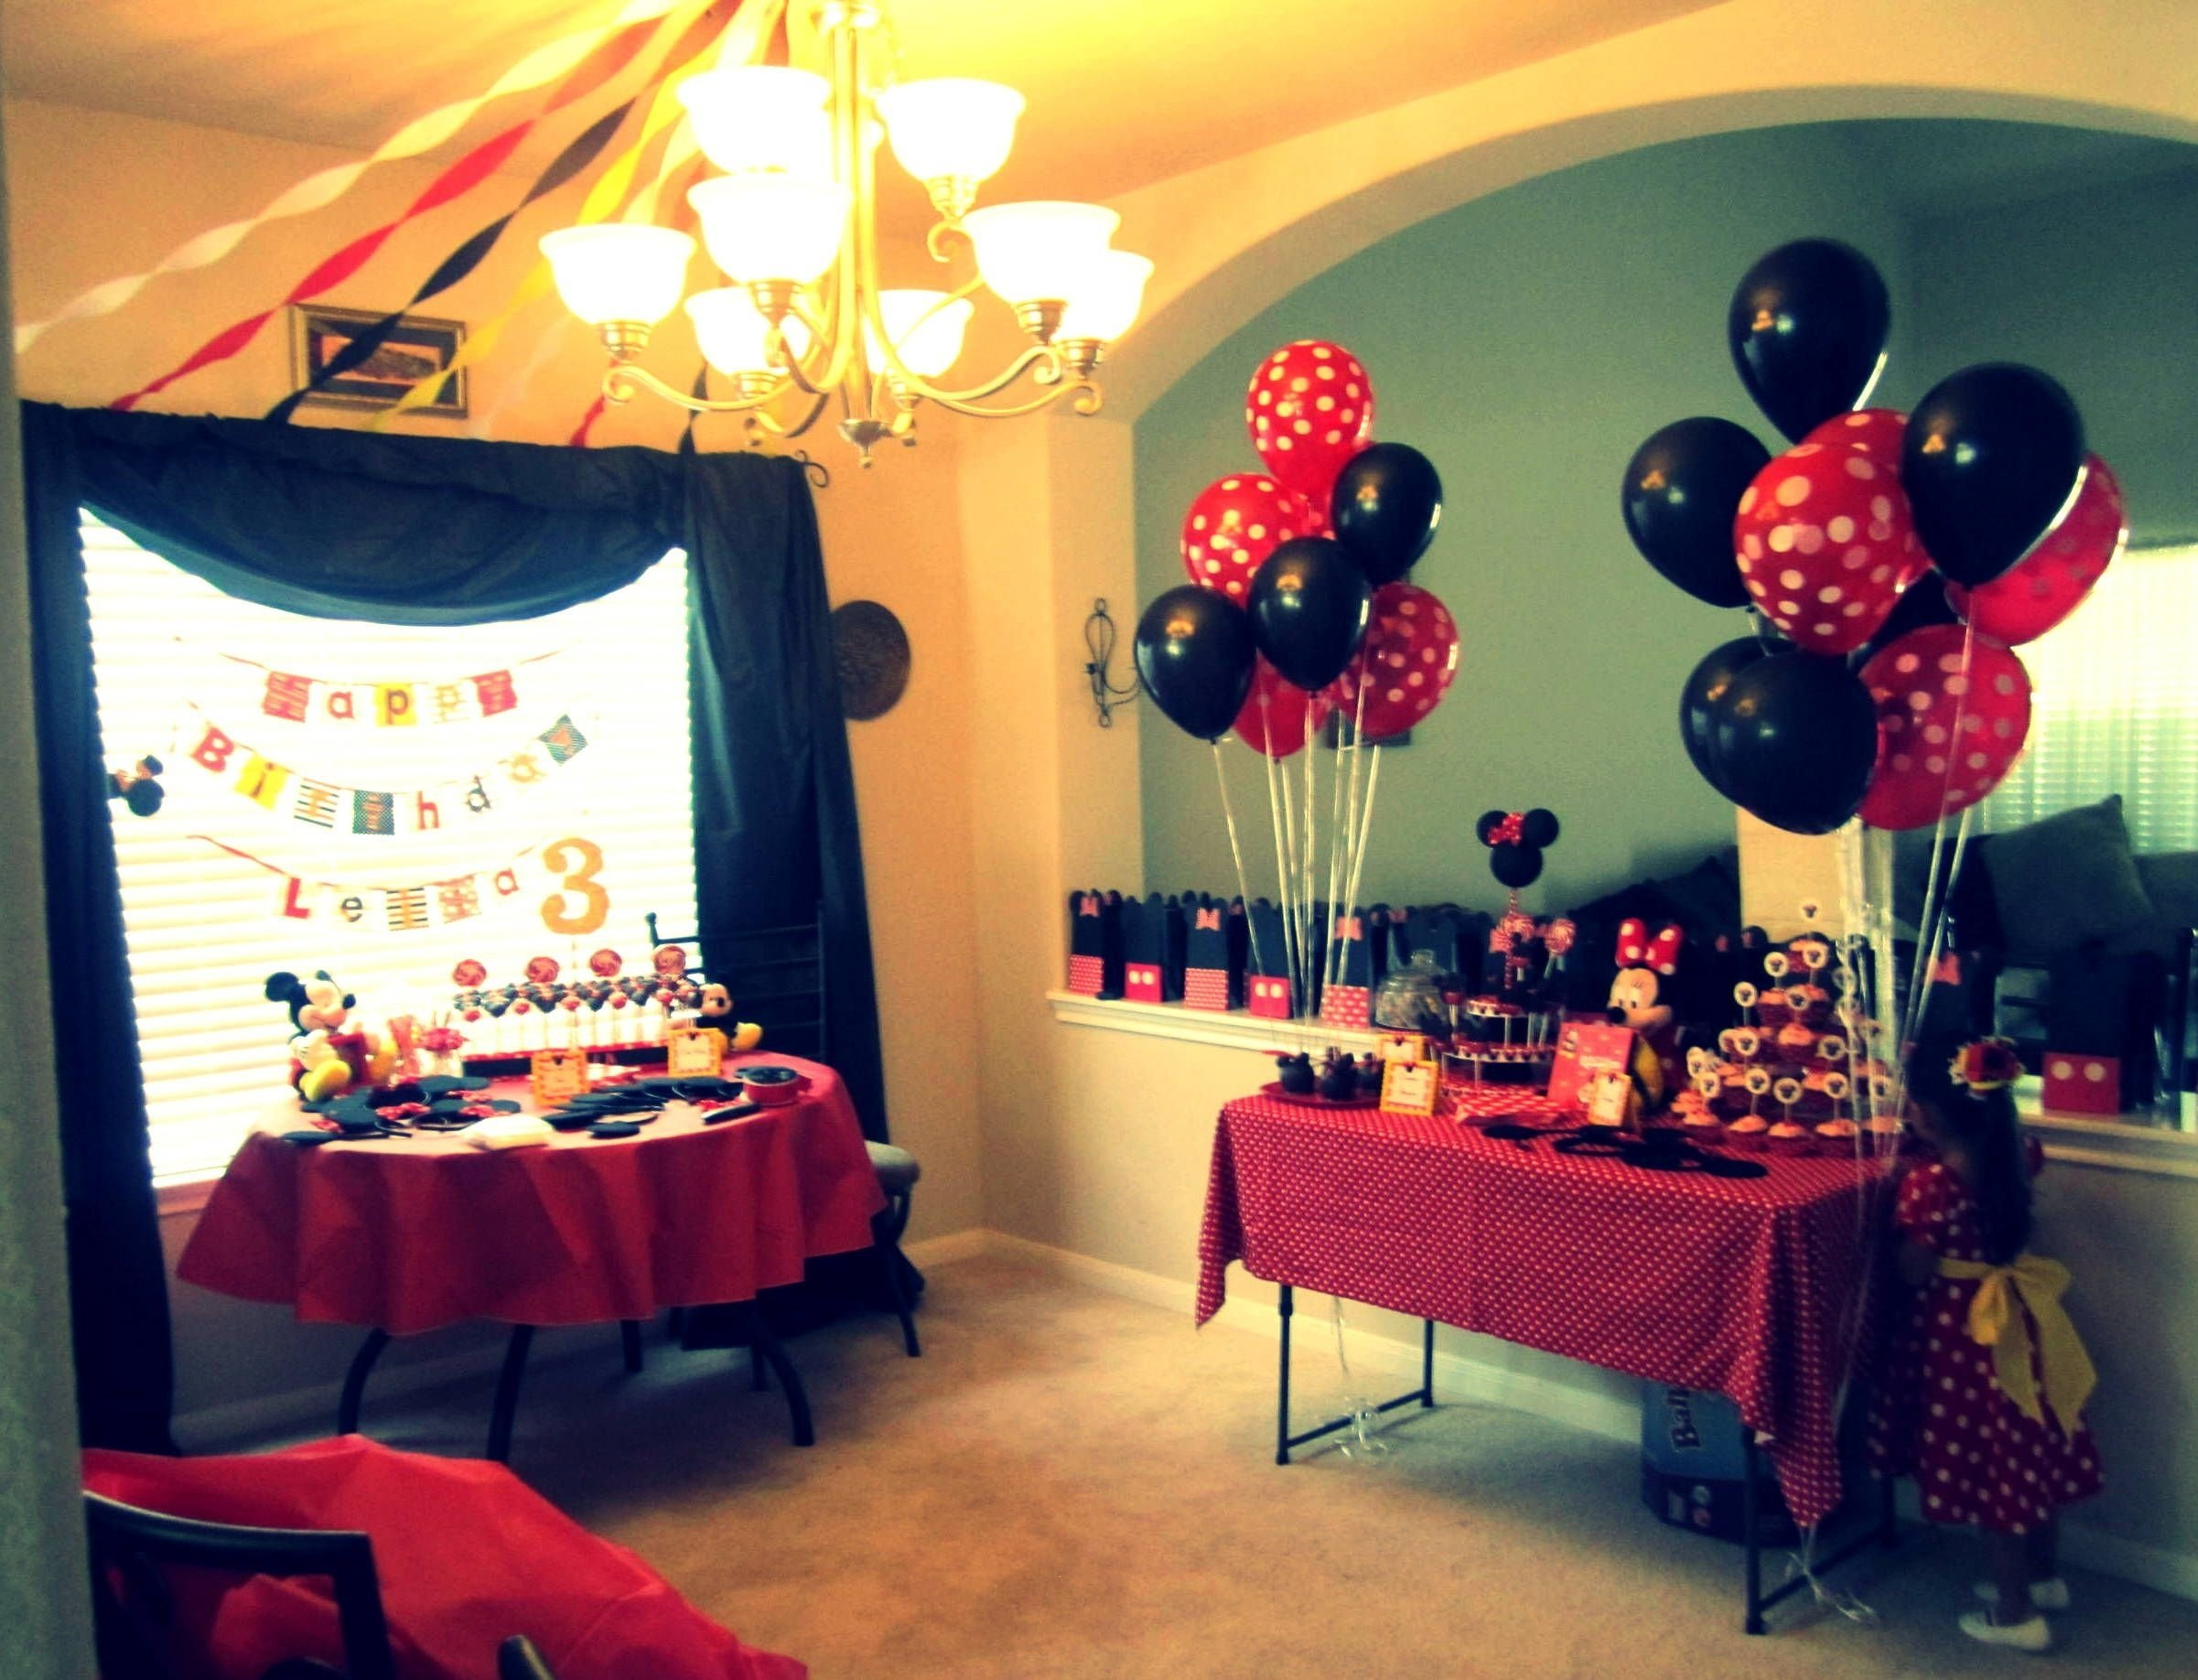 10 Stunning Minnie And Mickey Party Ideas mickey minnie party decorations projects ive done pinterest 2020